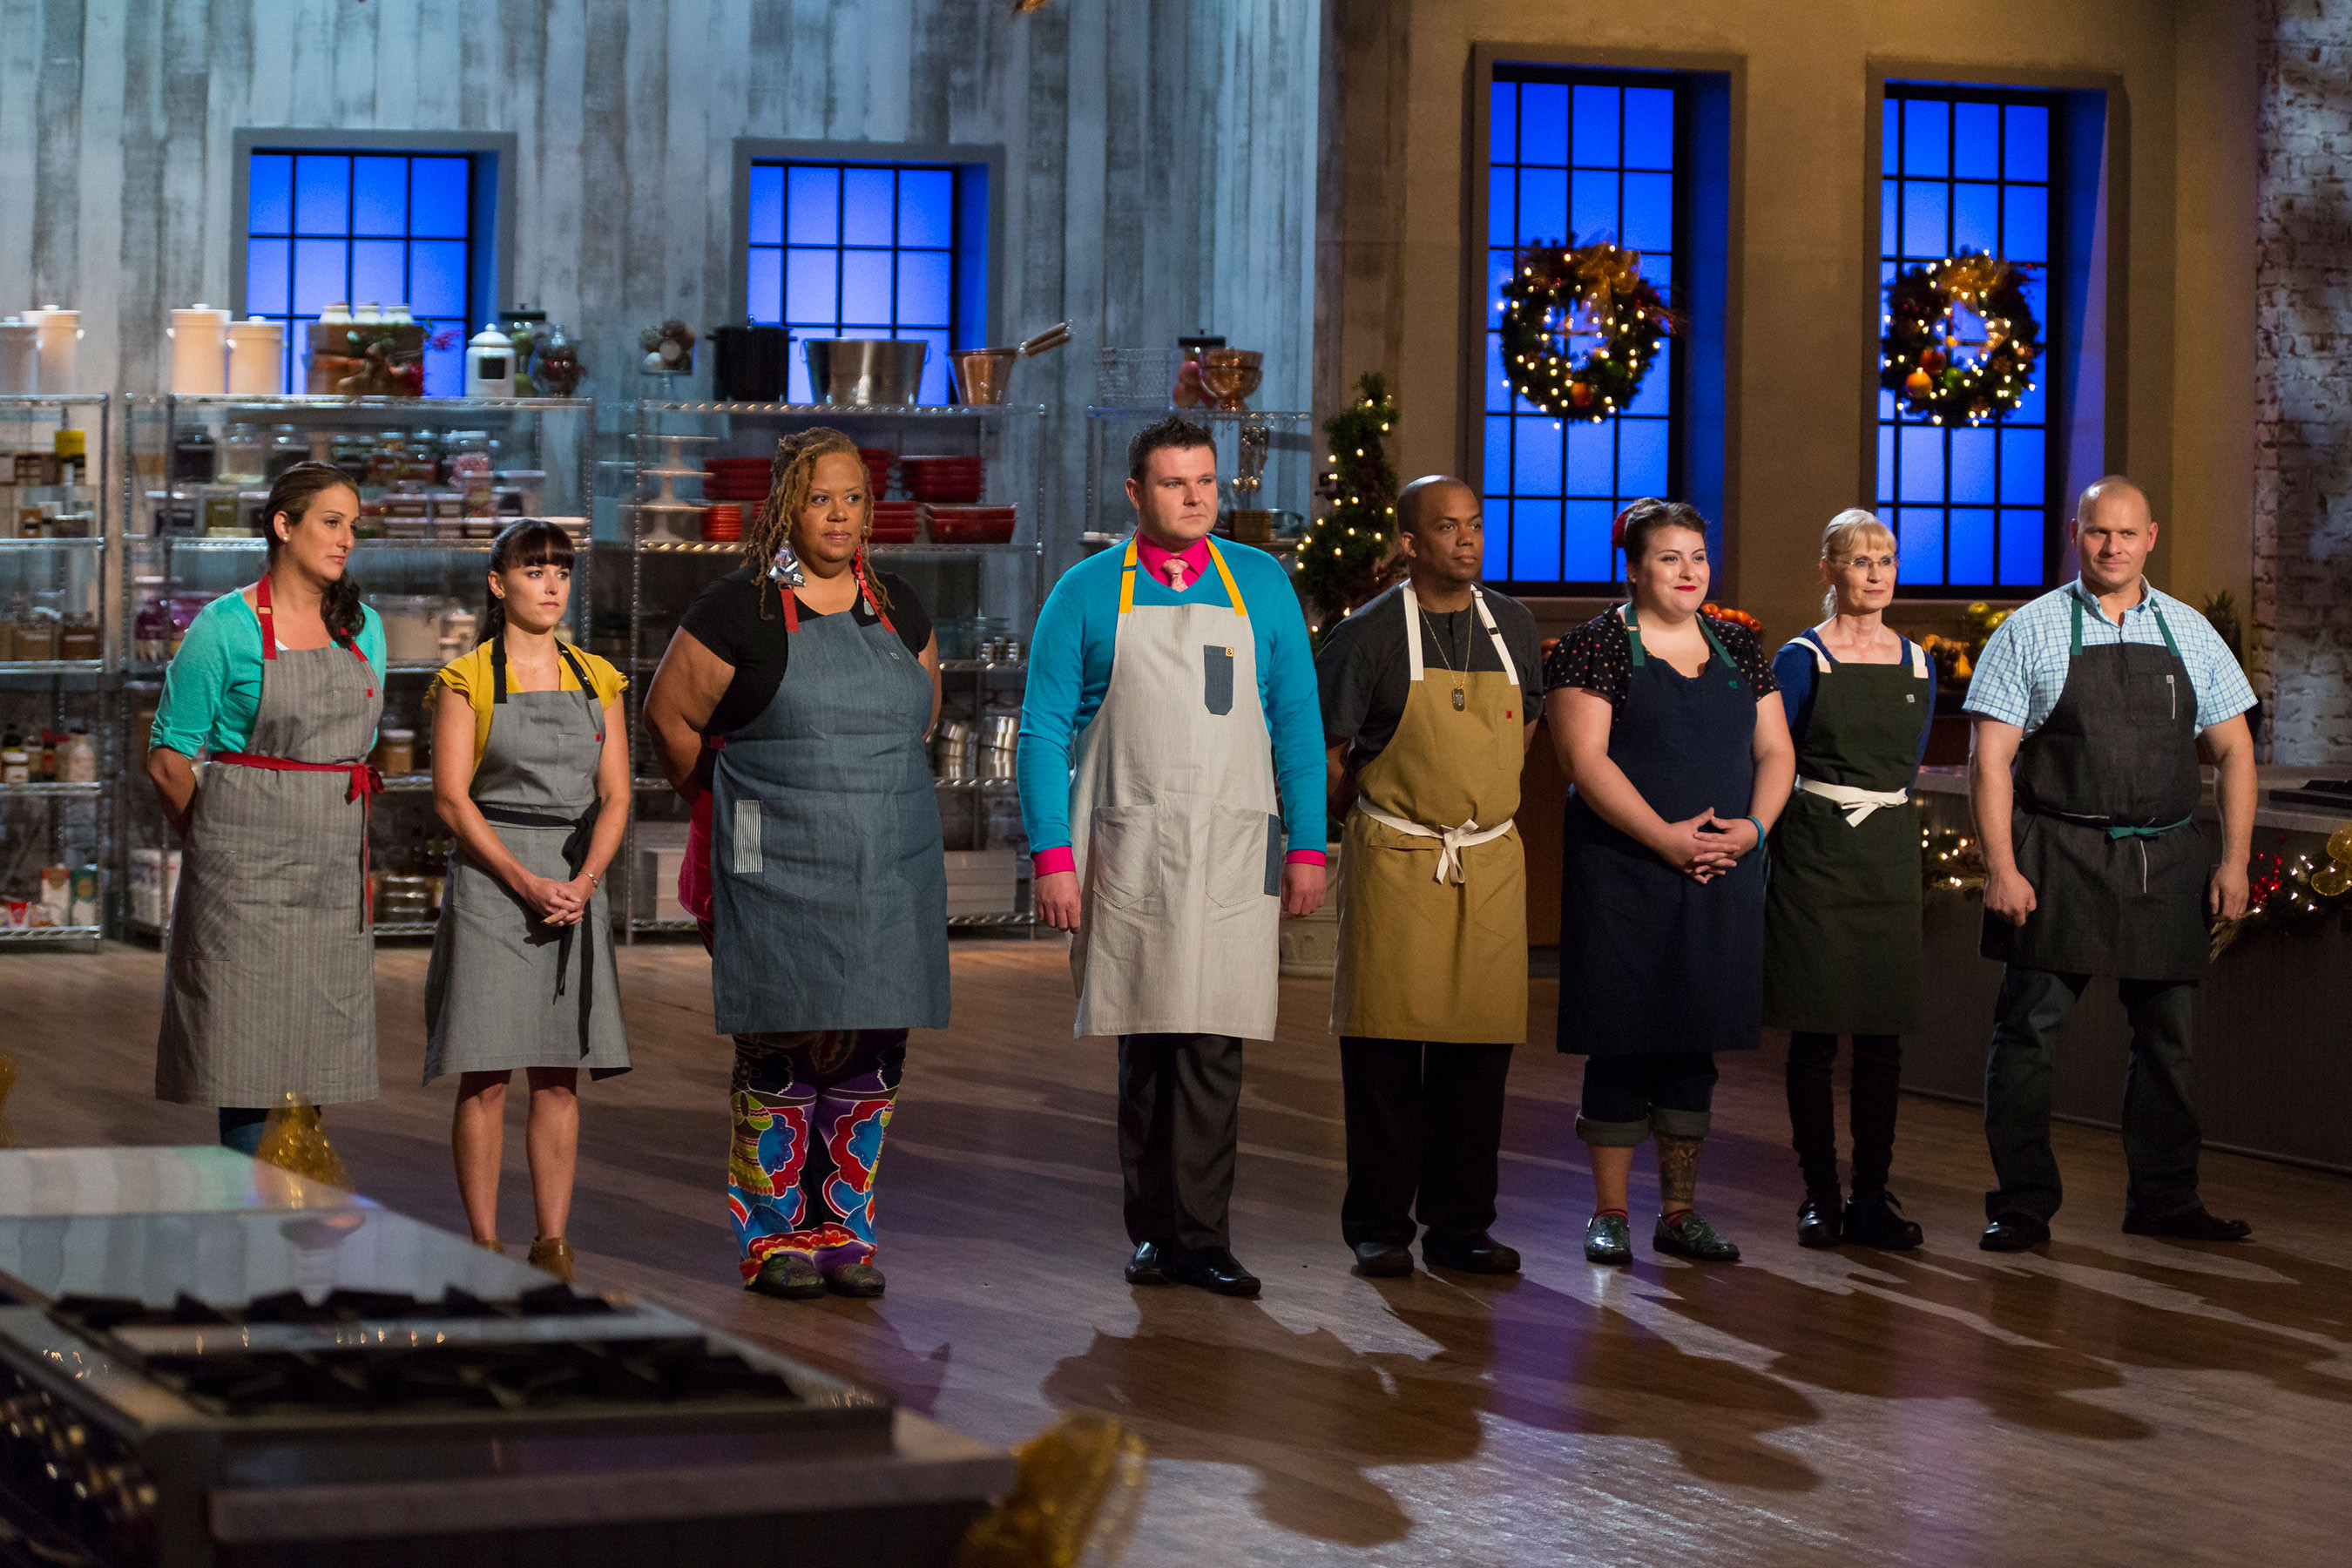 Christmas Baking Championship  HOLIDAYS AT FOOD NETWORK GET EVEN SWEETER WITH NEW SERIES